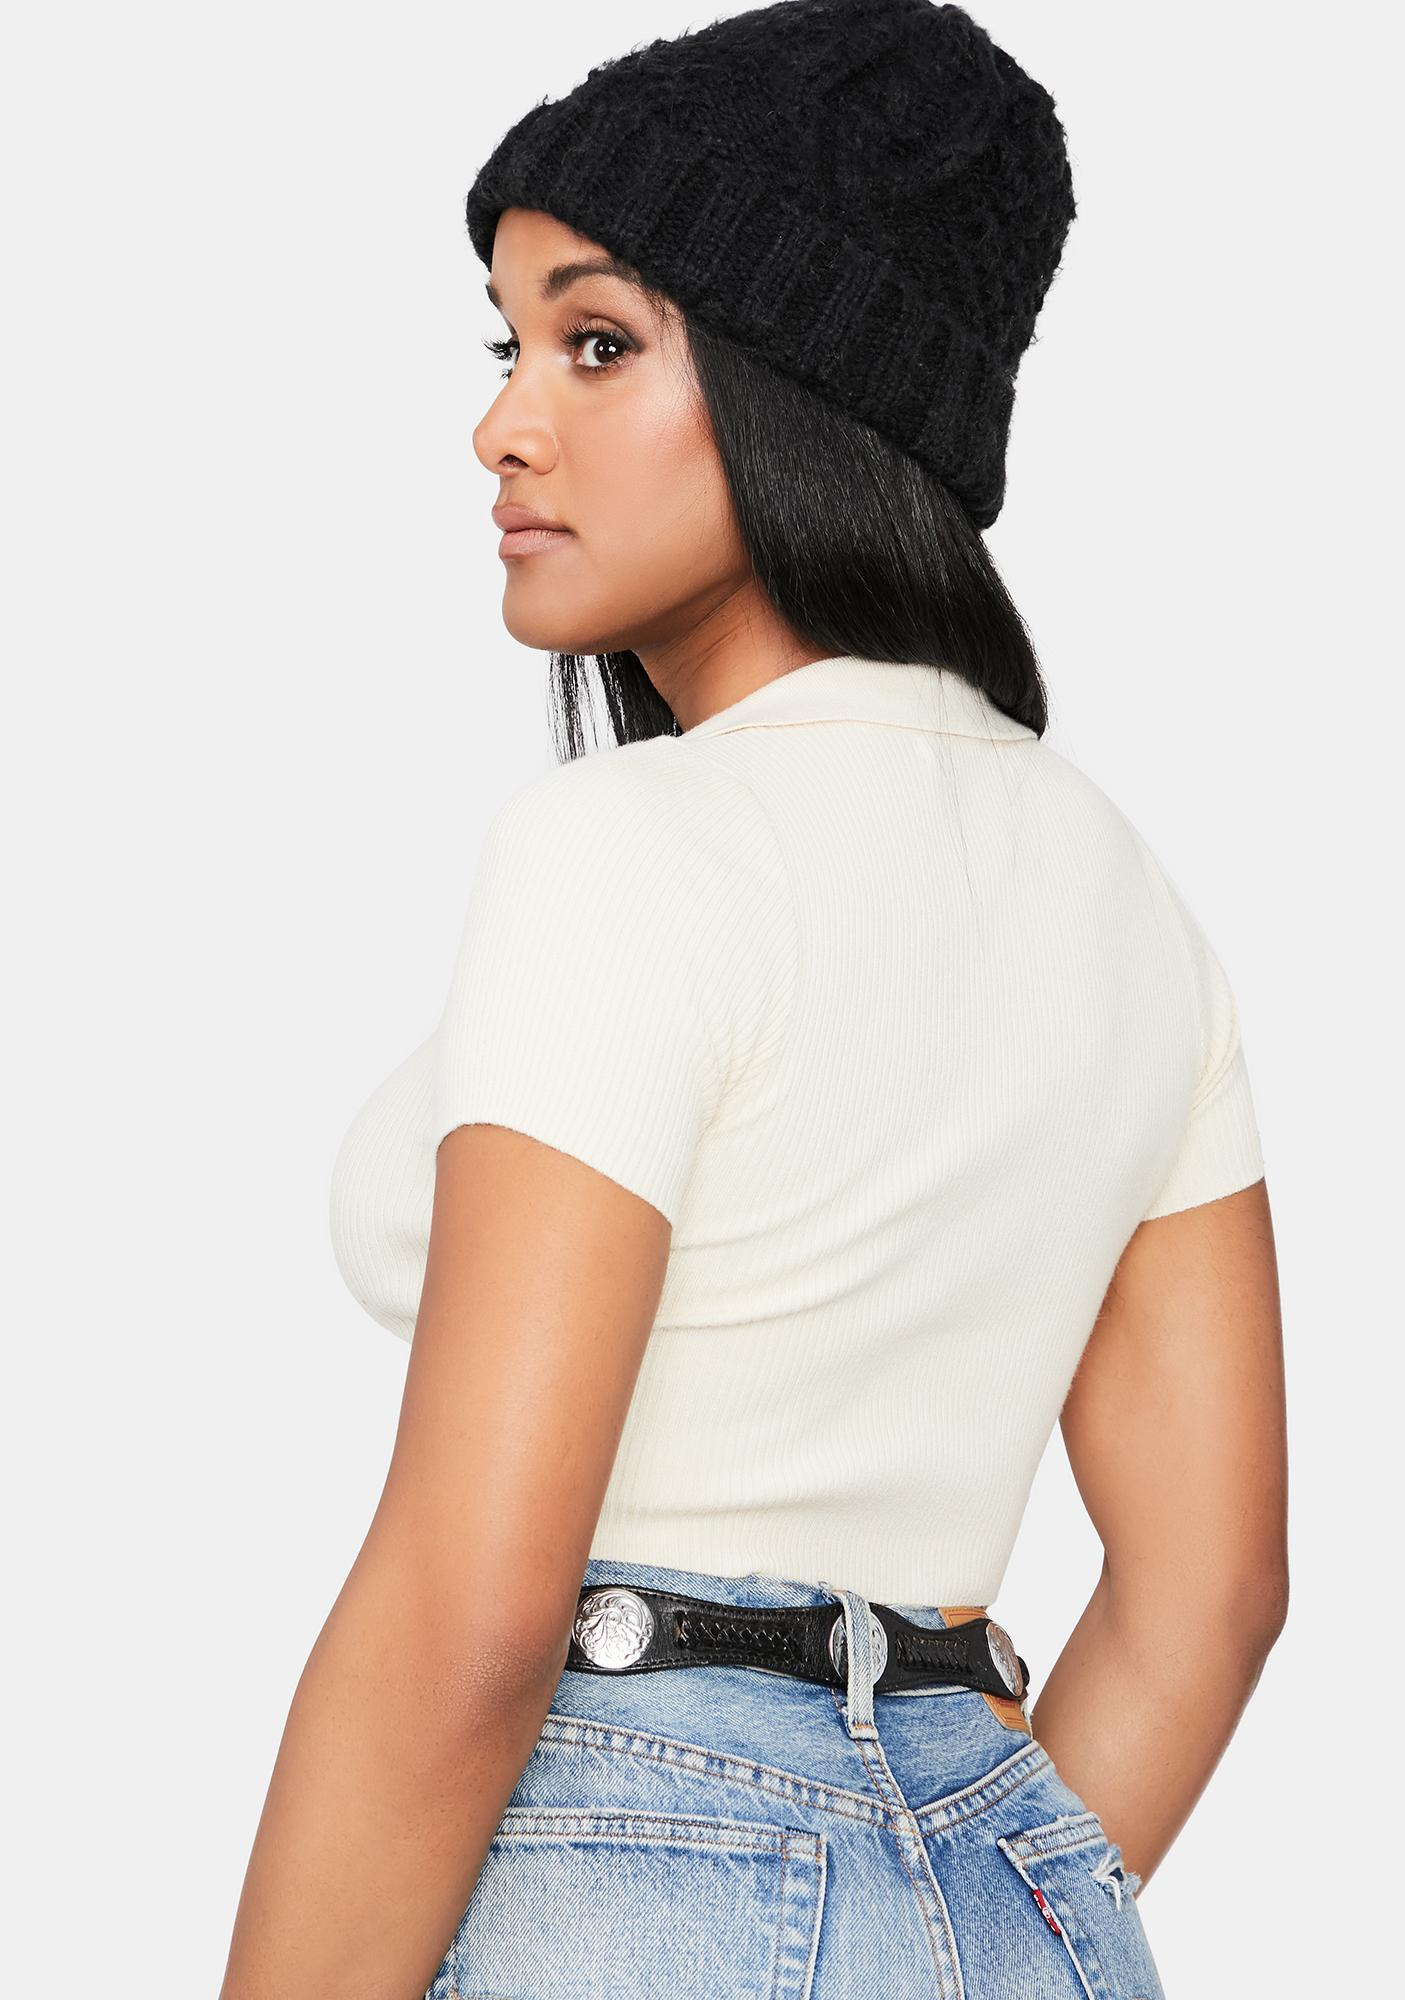 Let's Go Downtown Ribbed Crop Tee